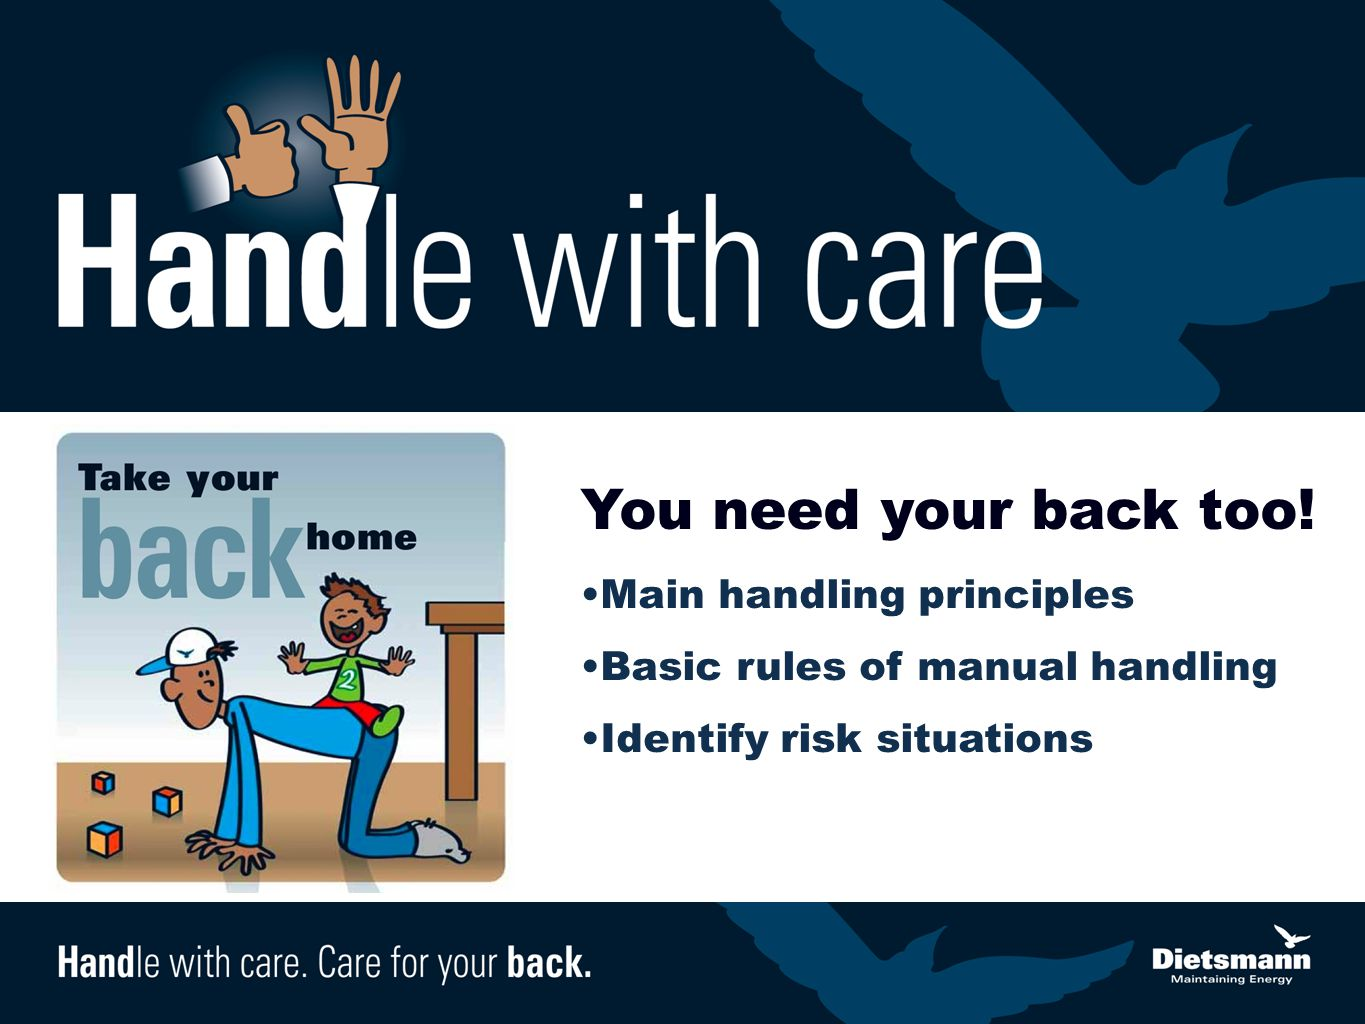 You need your back too! Main handling principles